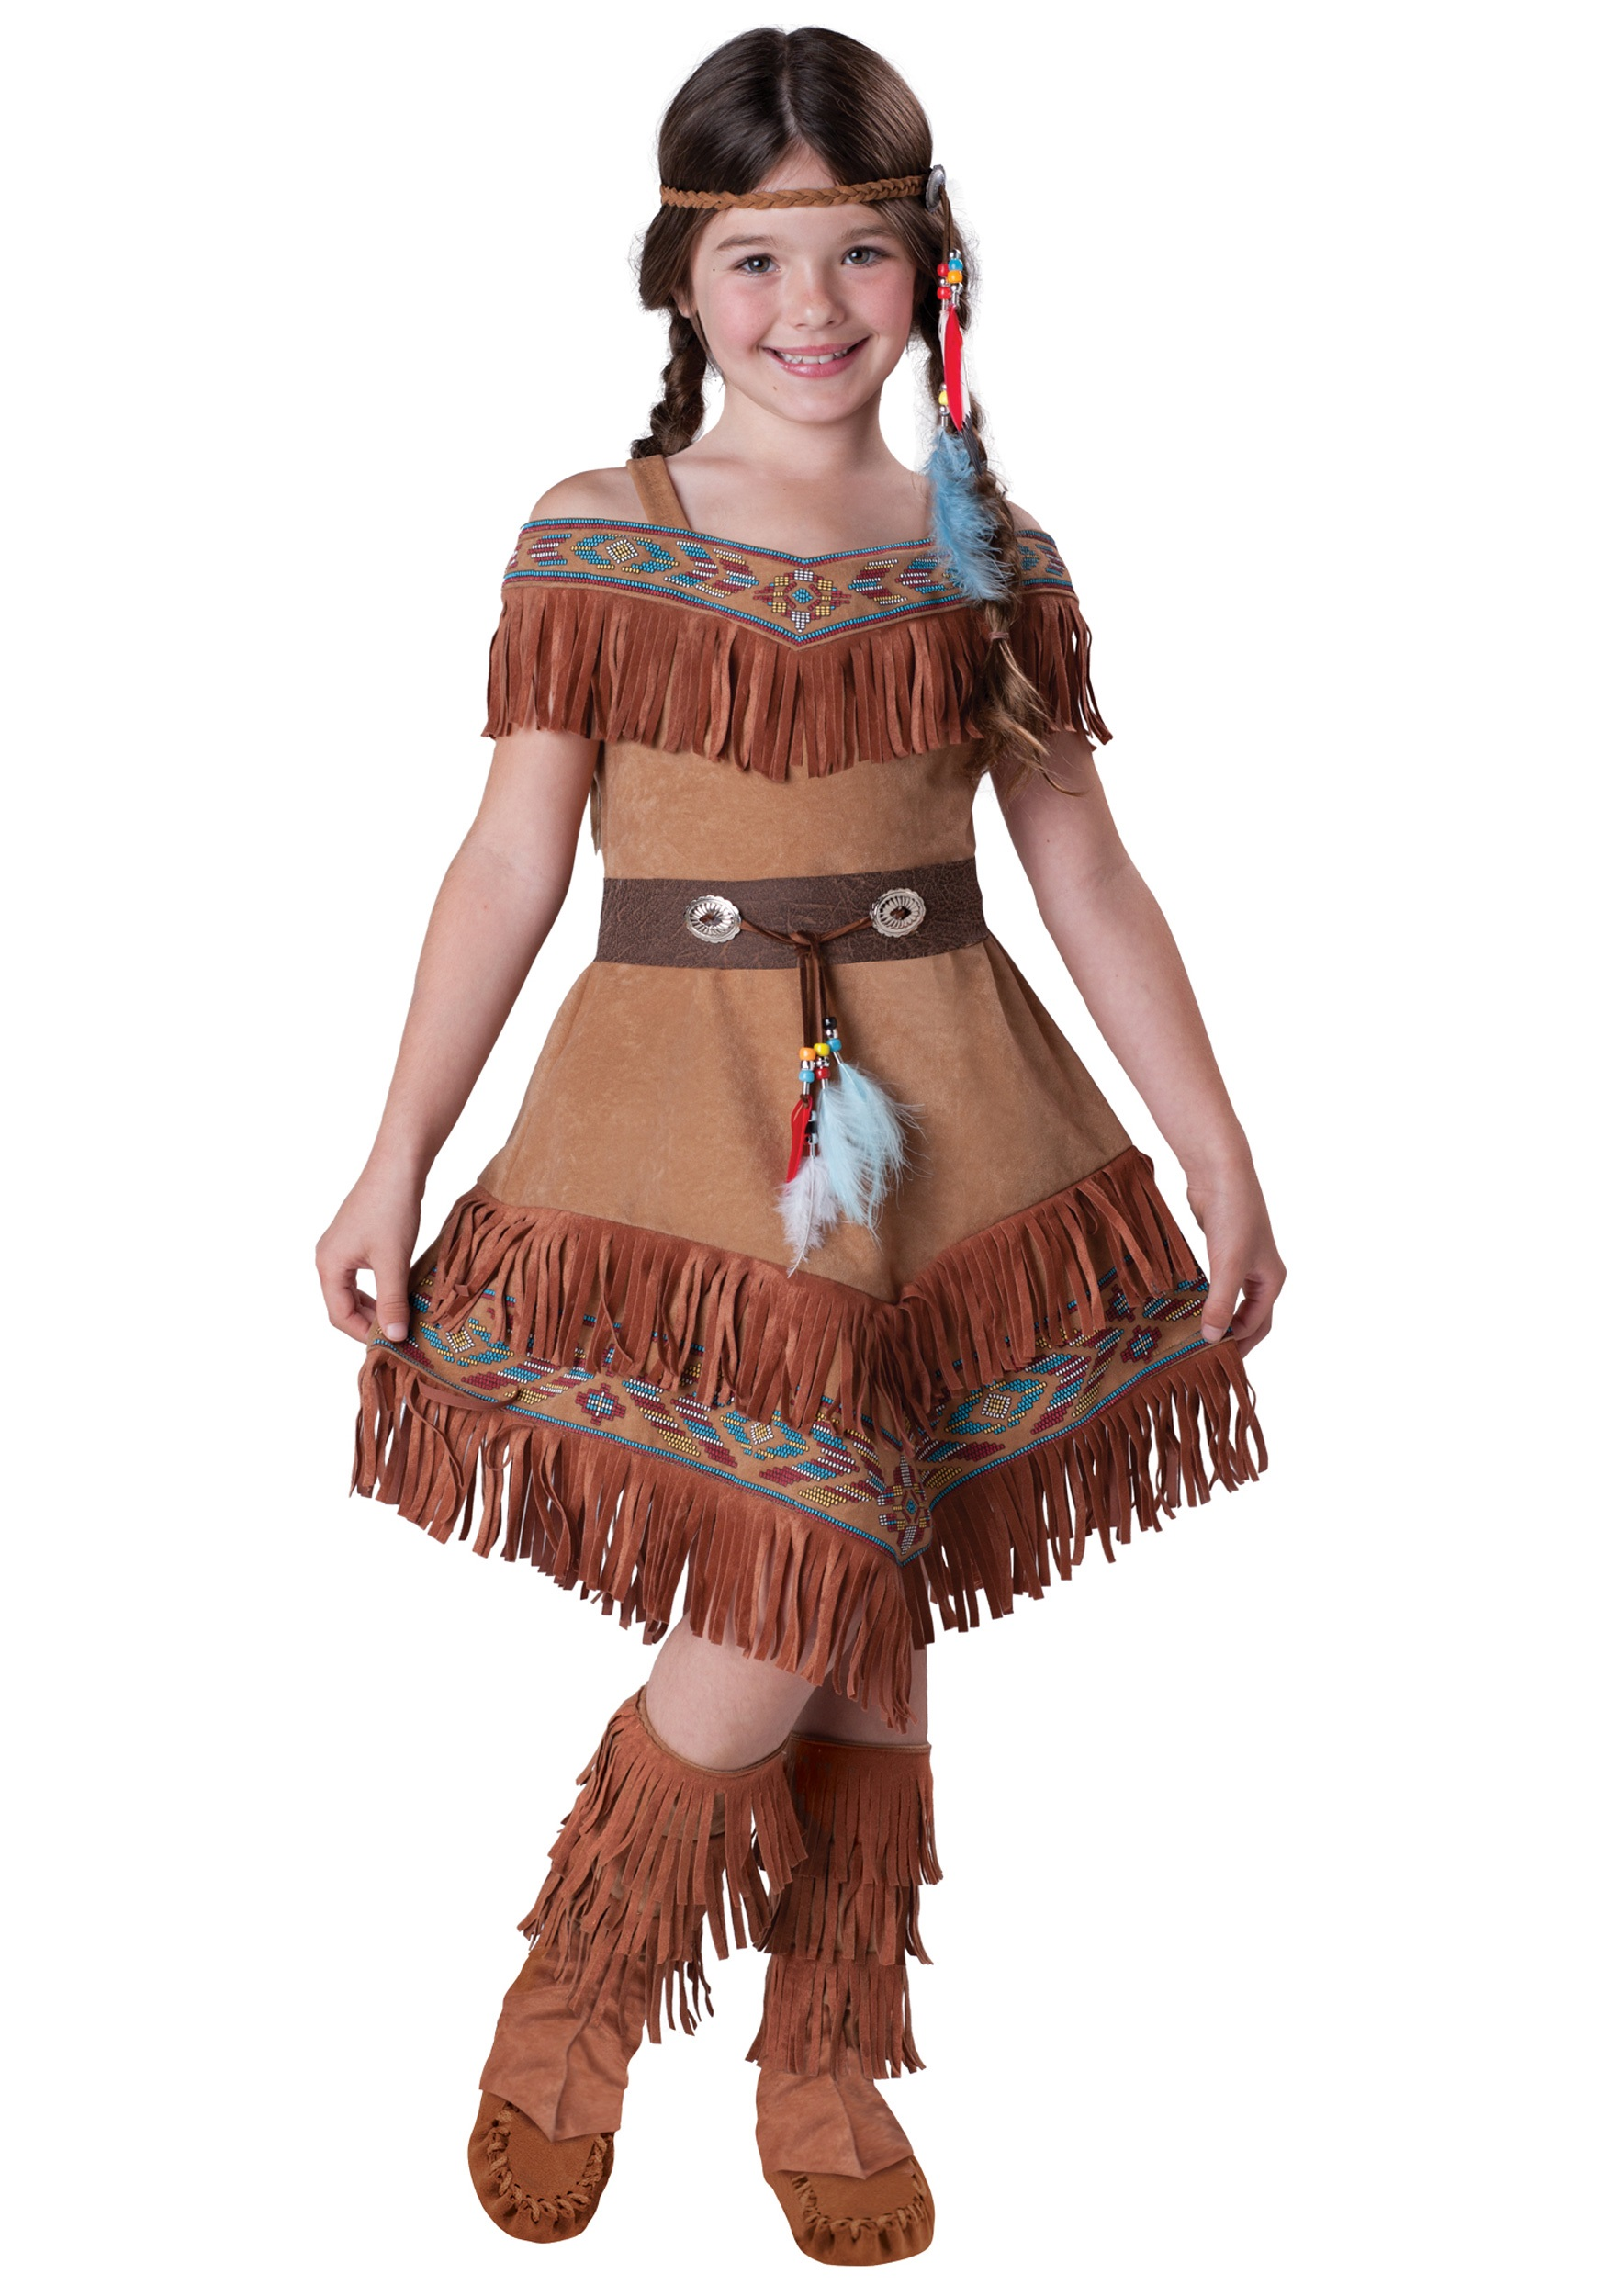 Child Indian Maiden Costume  sc 1 st  Halloween Costumes & Child Indian Maiden Costume - Halloween Costumes